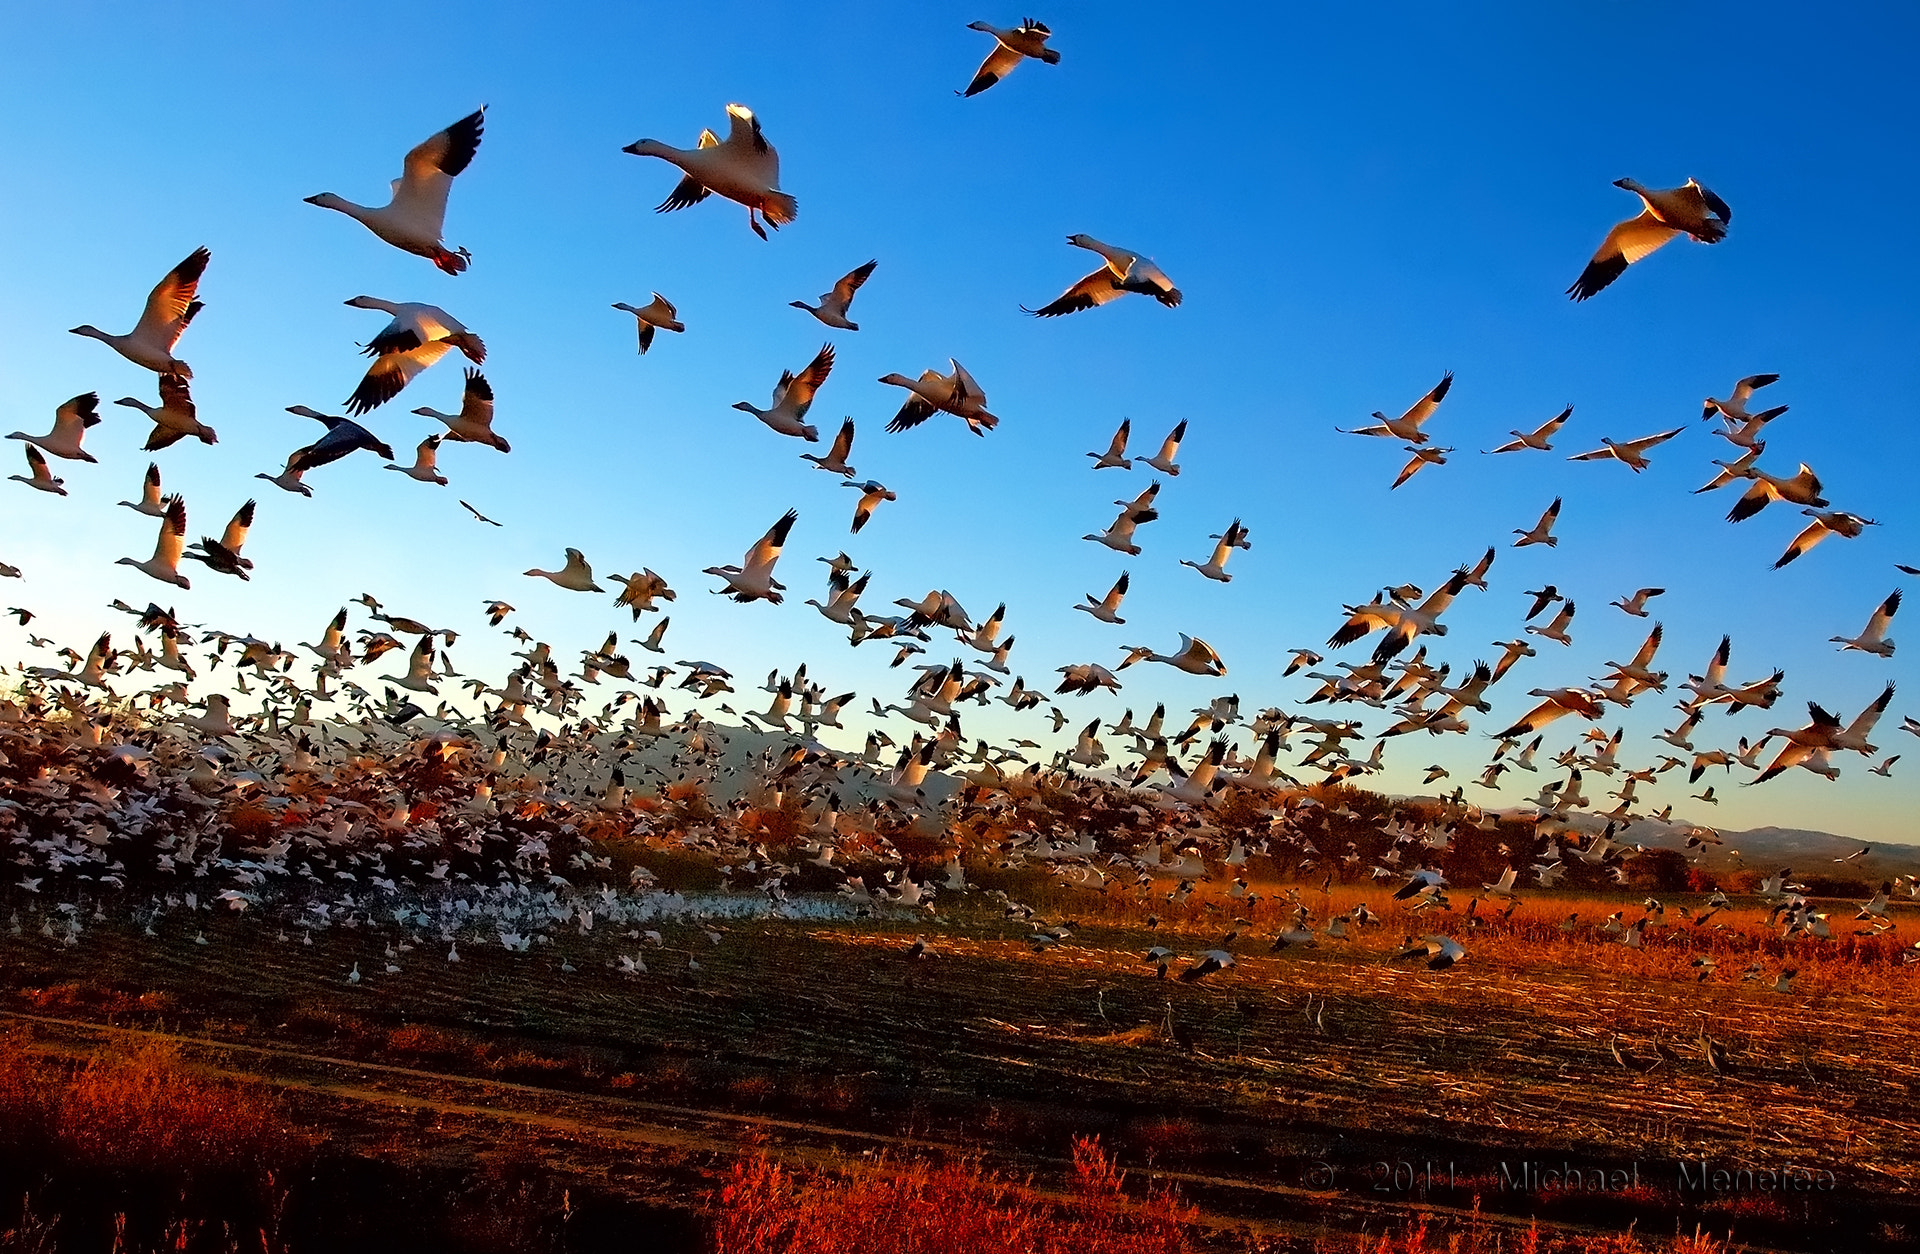 Photograph Fright Flight of the Snow Geese by Michael Menefee on 500px